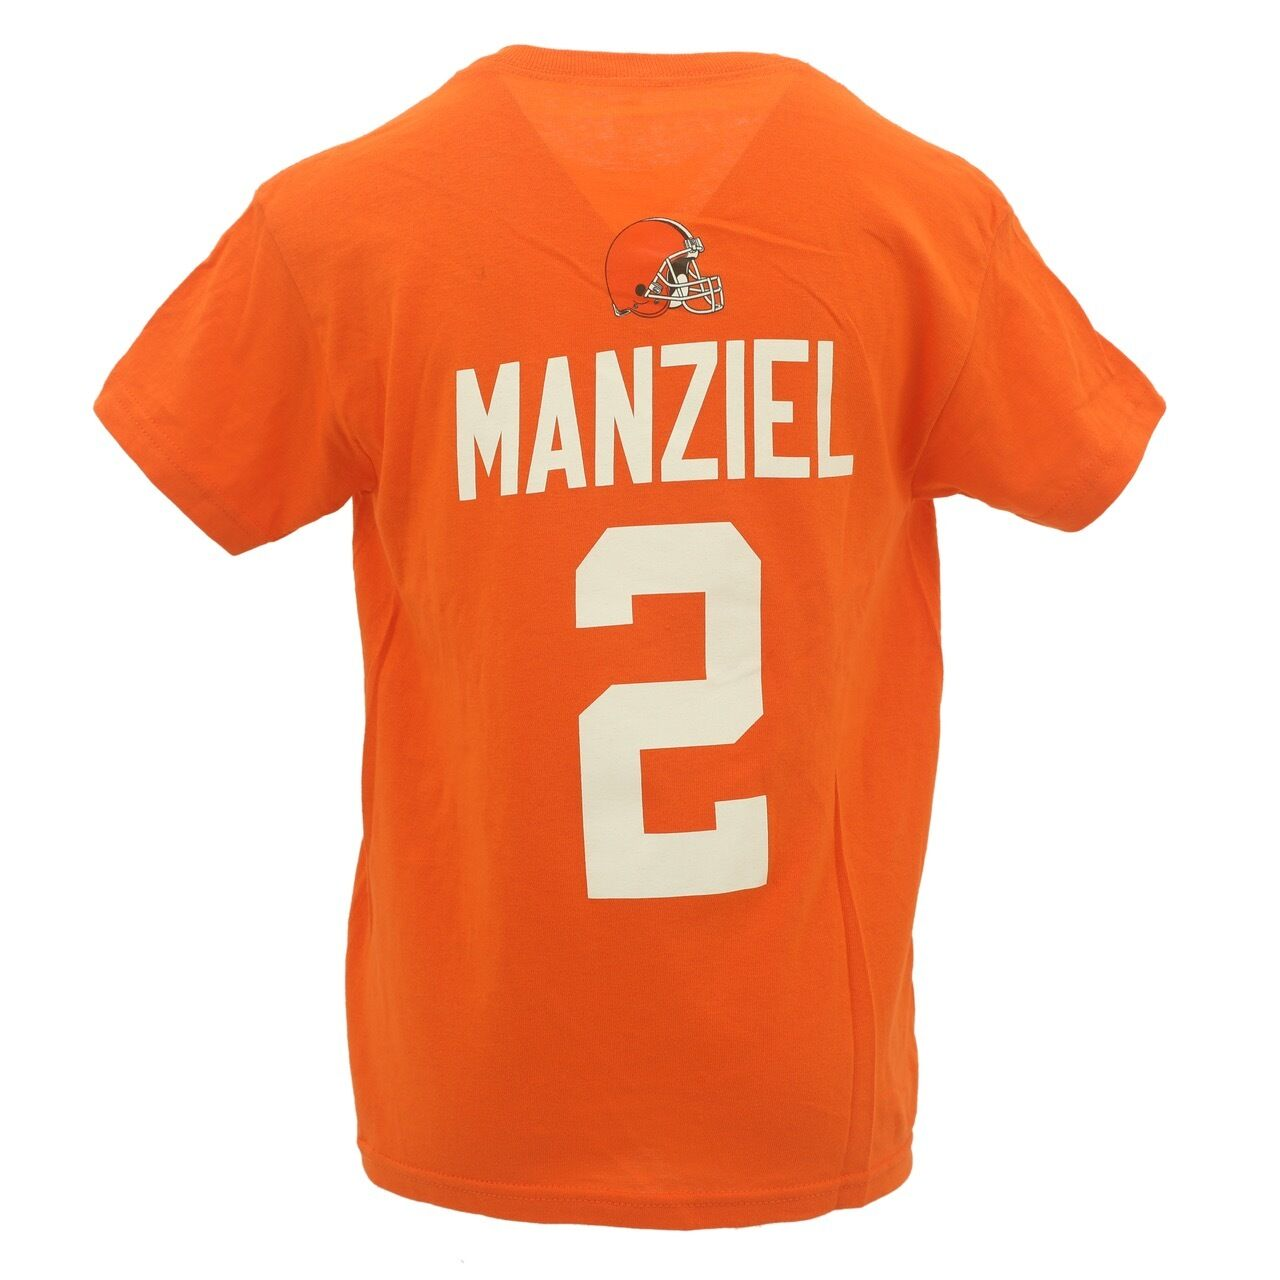 10053a74 Details about NFL Youth Size Johnny Manziel Cleveland Browns Official NFL  Fan Apparel T-Shirt